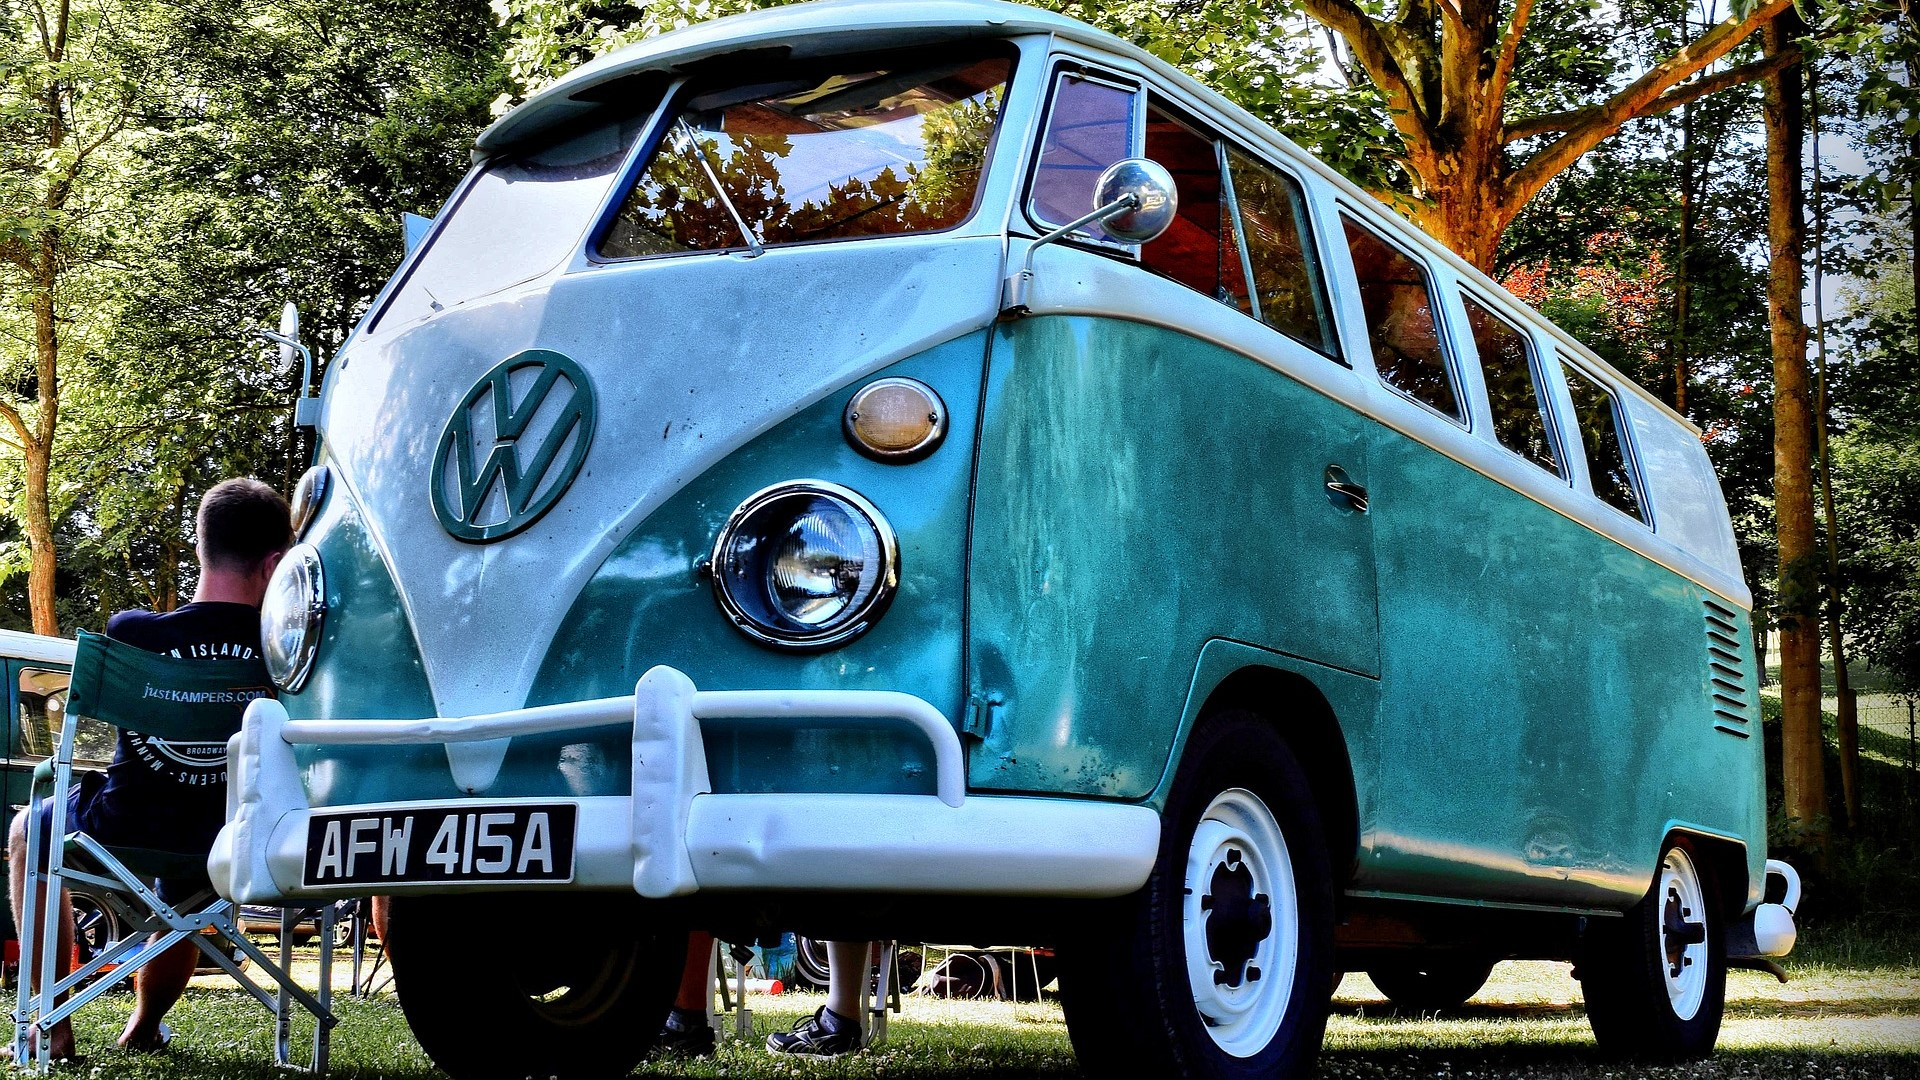 Touring in a VW camper